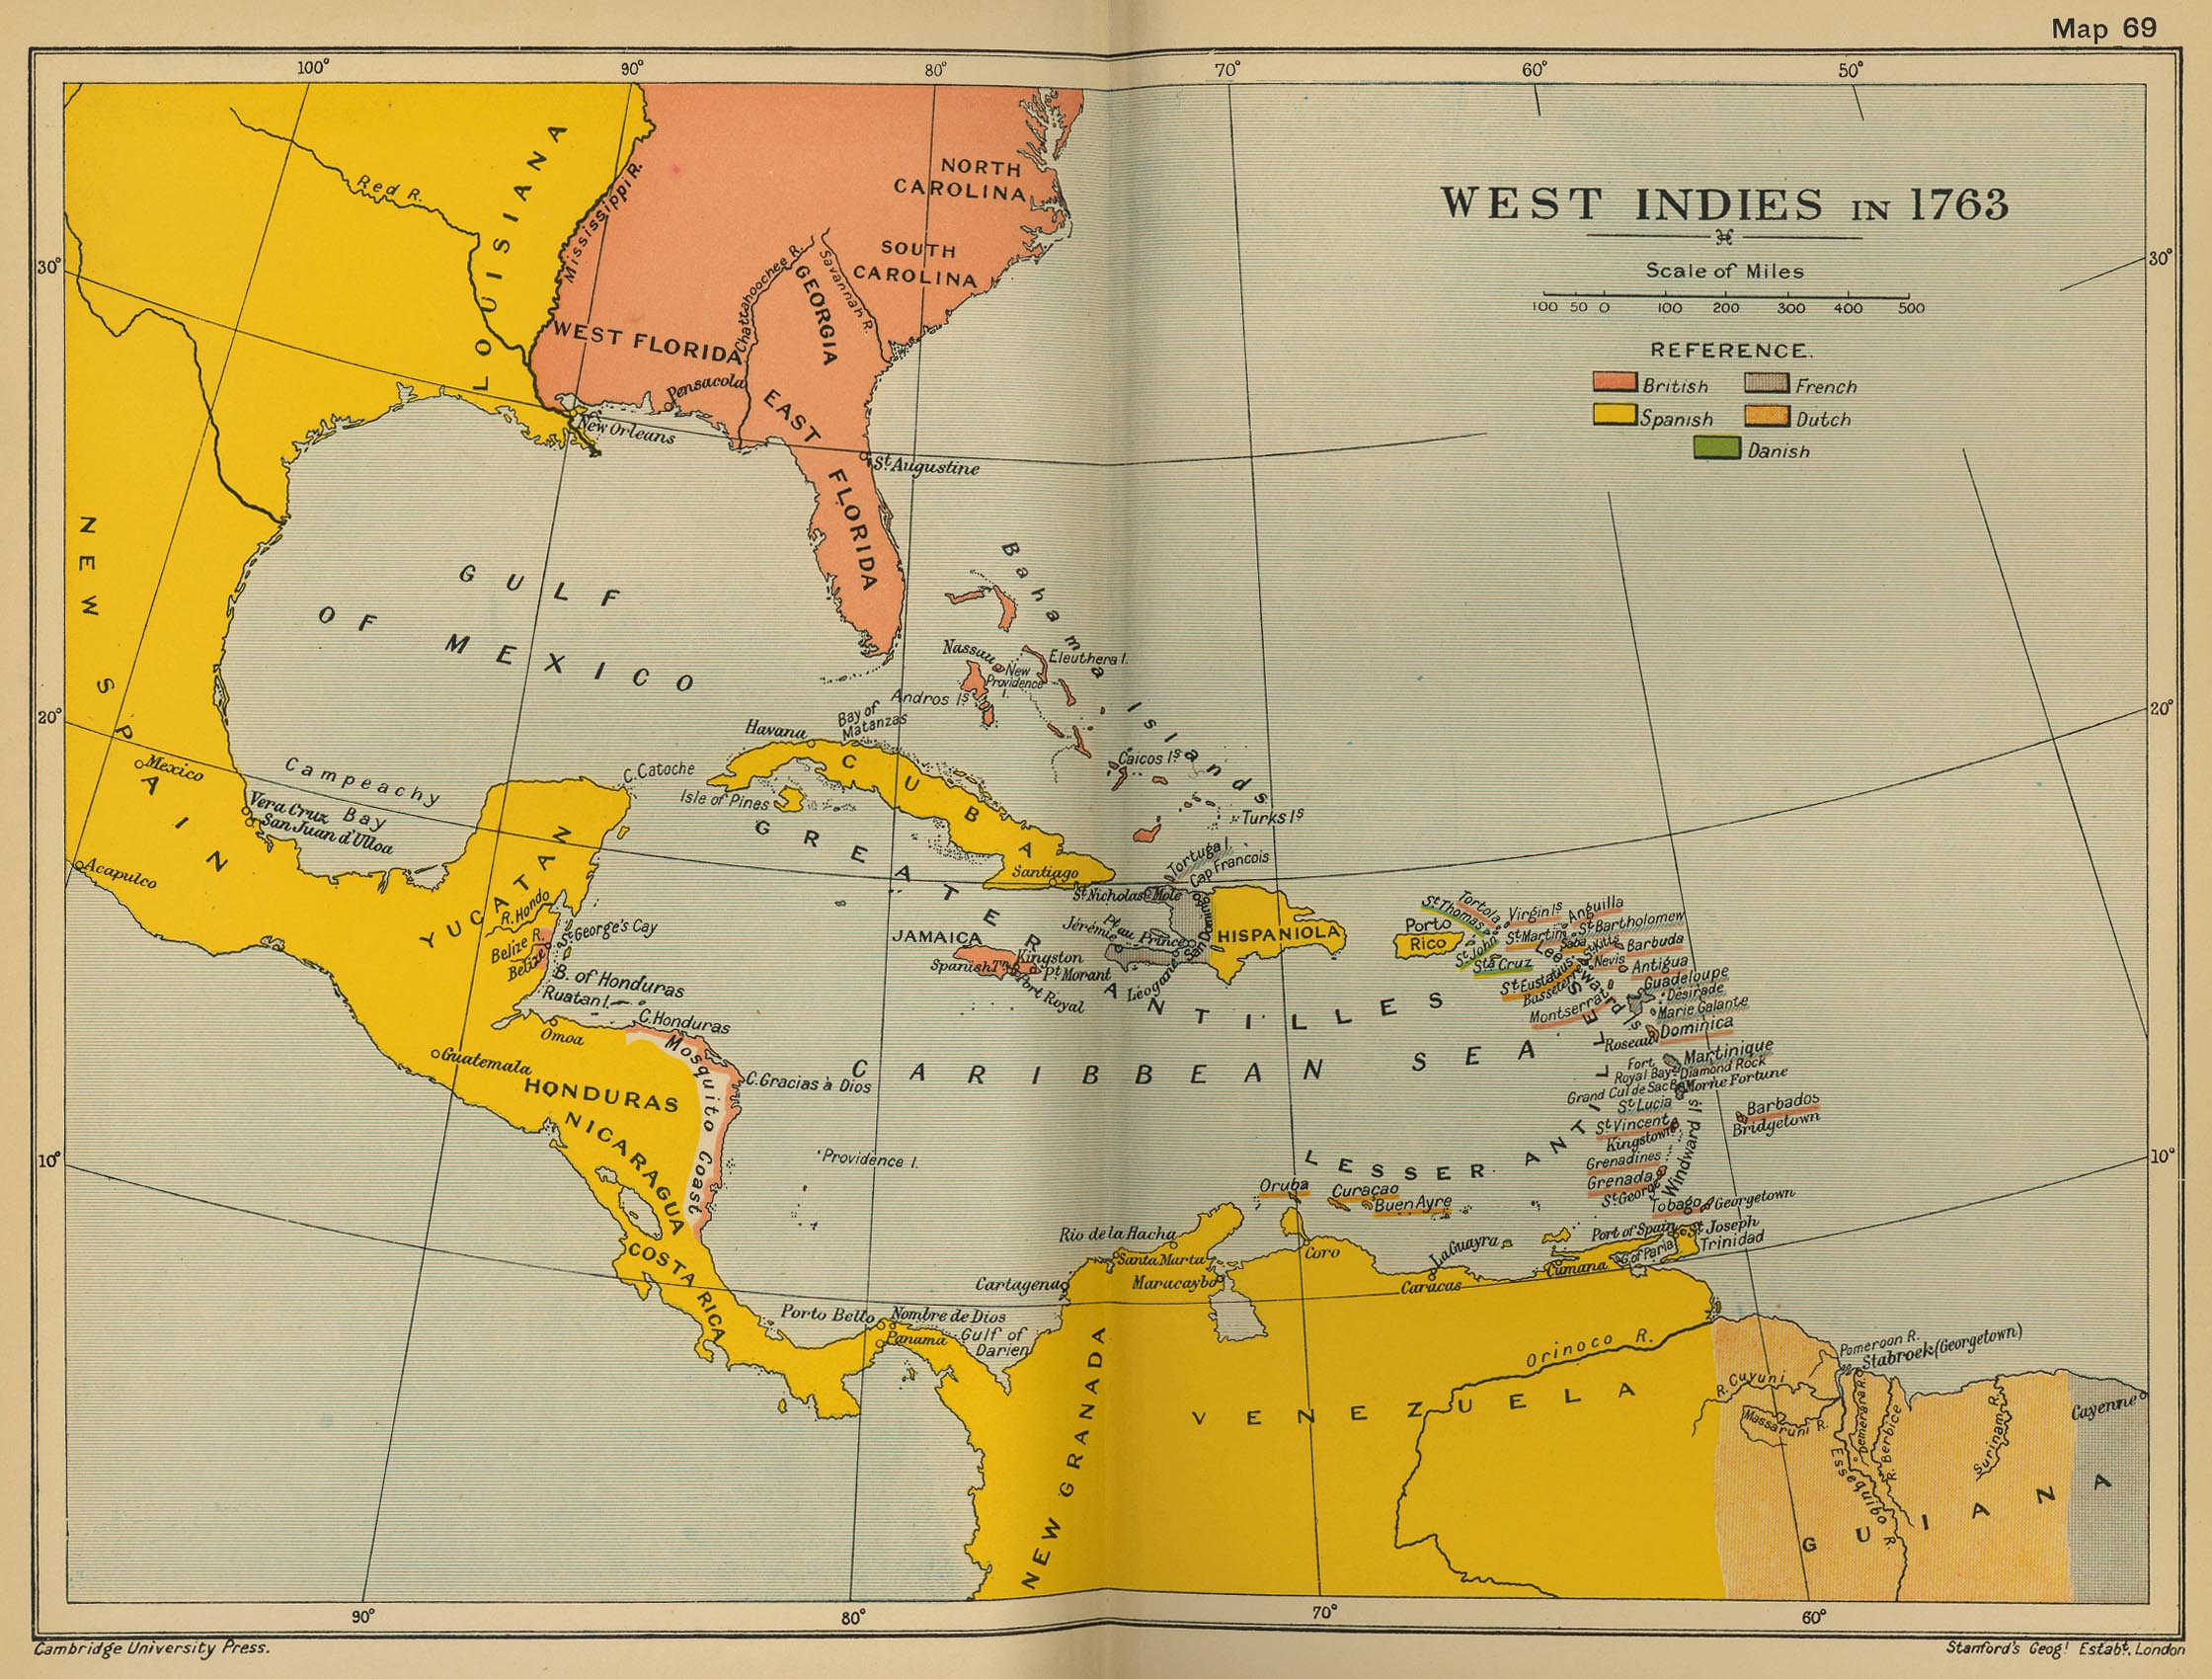 Cambridge modern history atlas 1912 perry castaeda map collection map 68 west indies in 1763 gumiabroncs Gallery